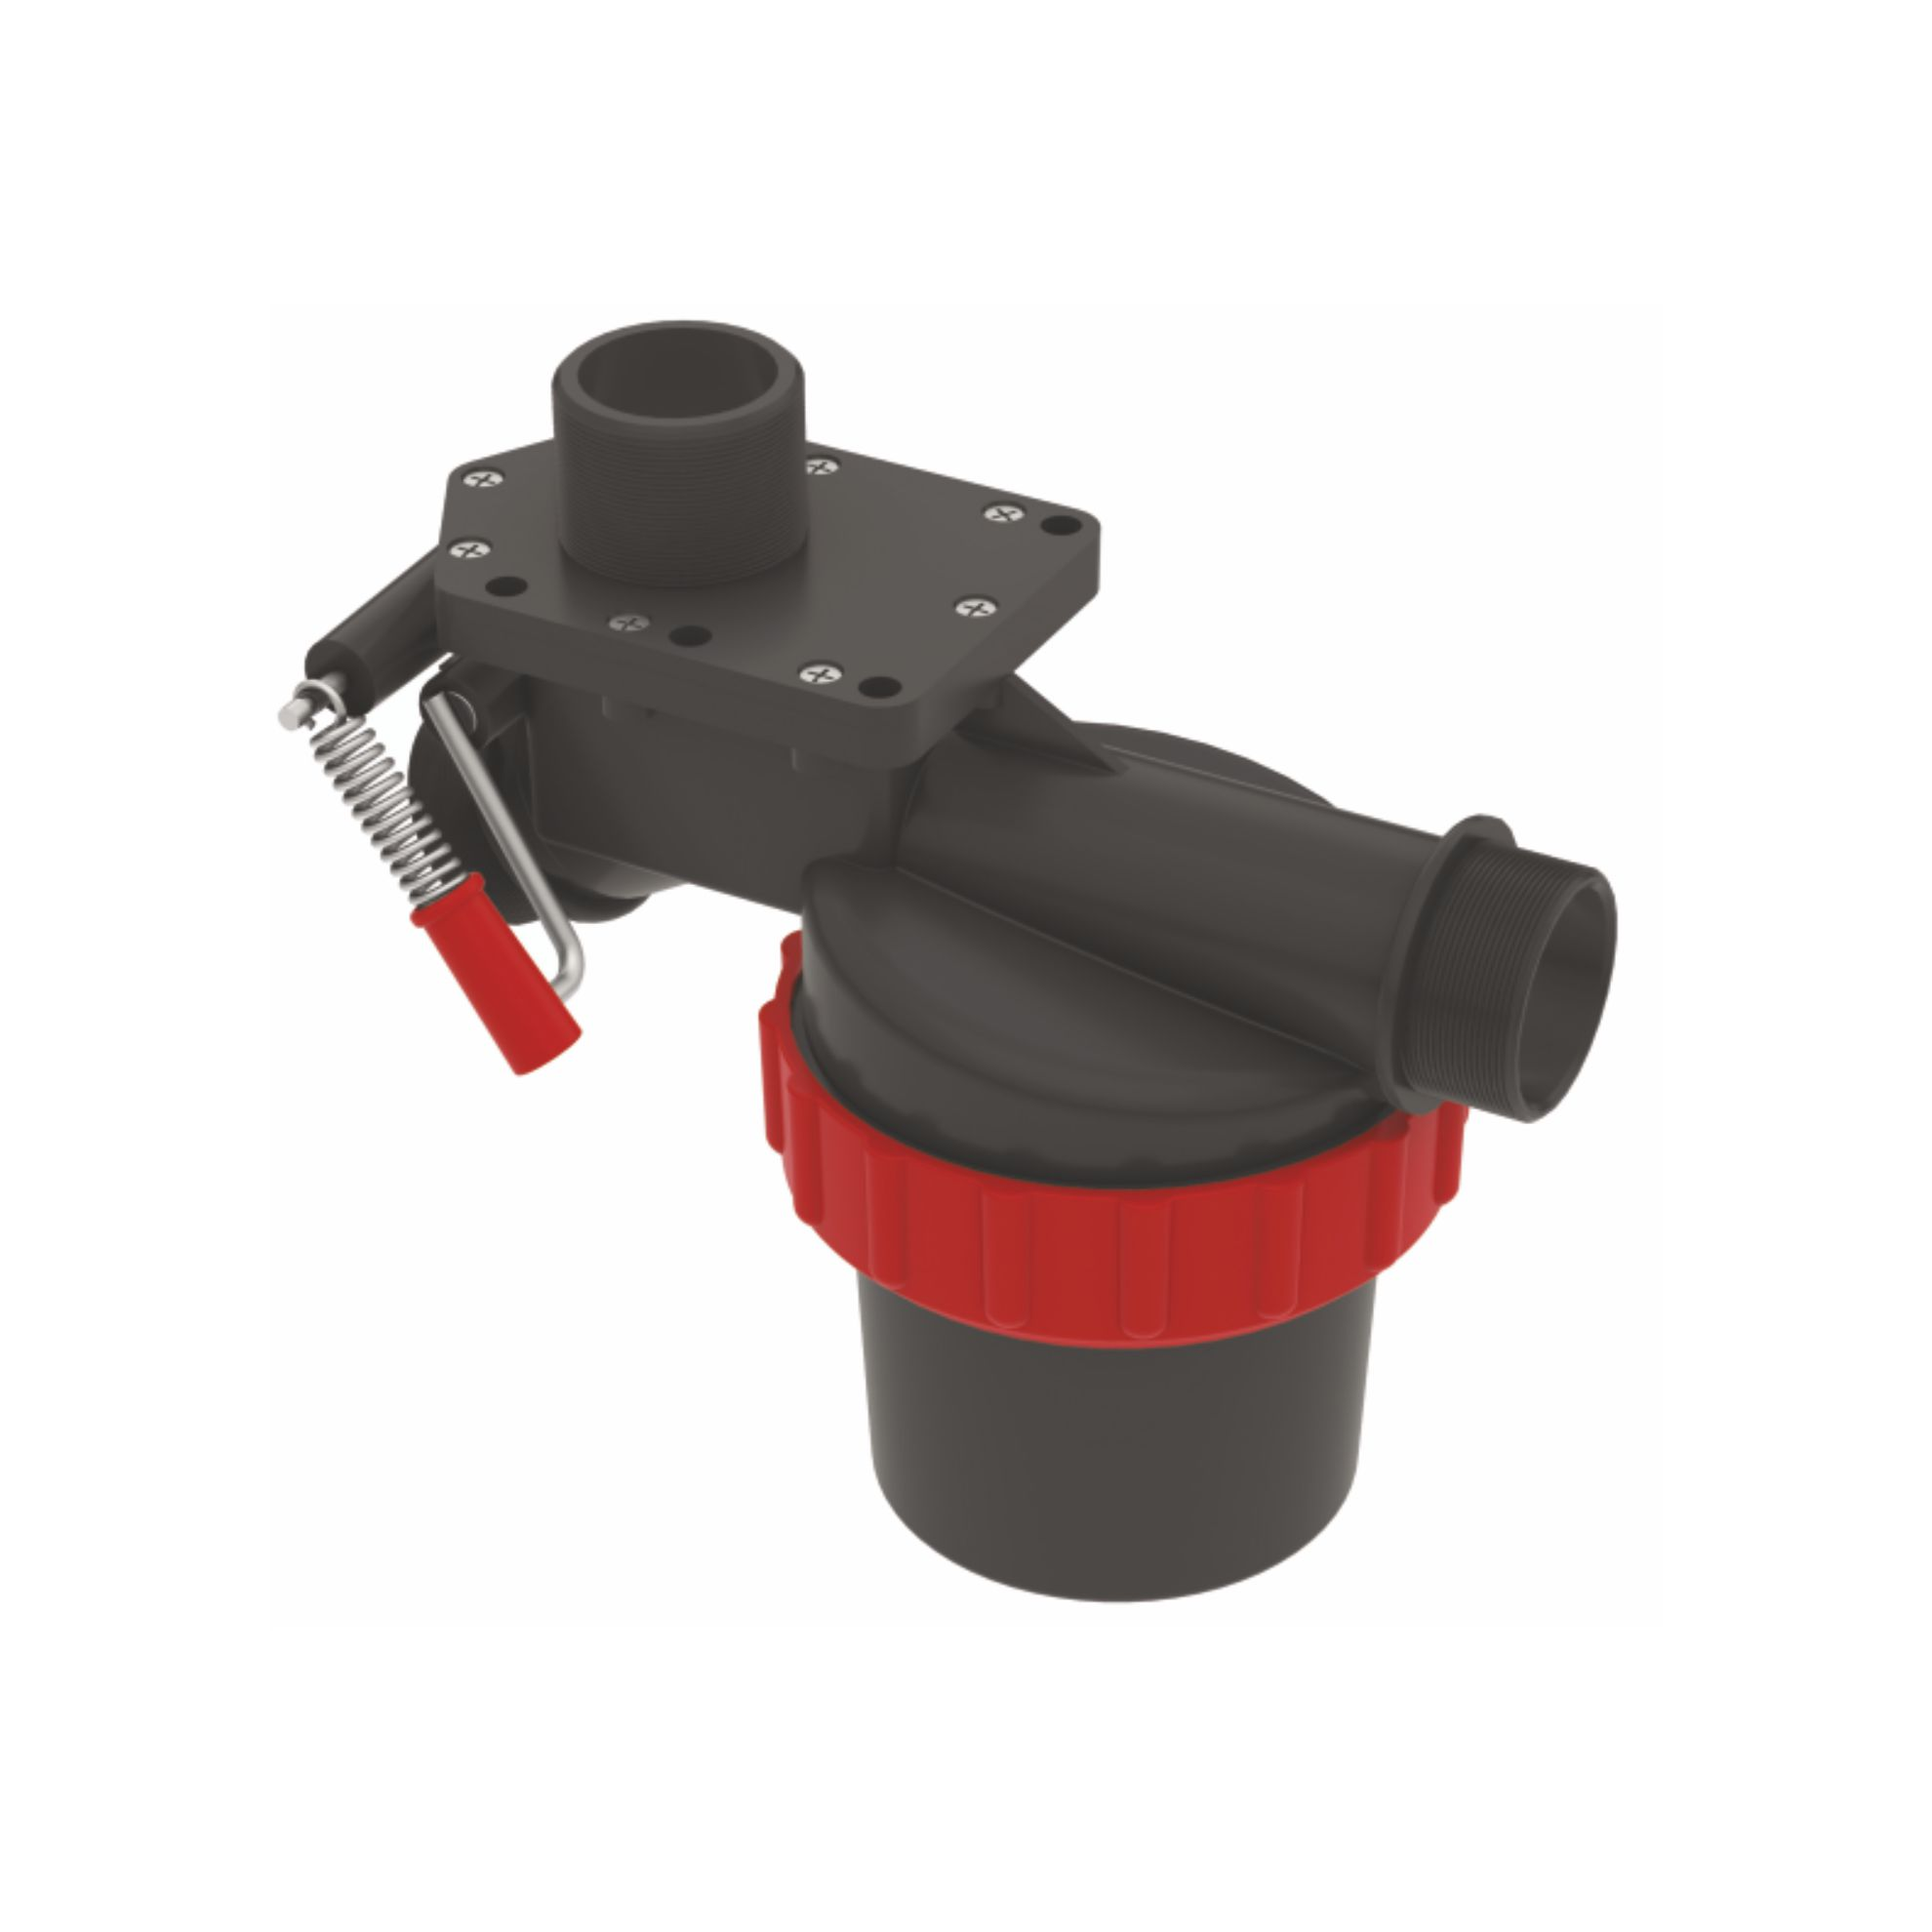 220 LT. 3 WAY SUCTION FILTER